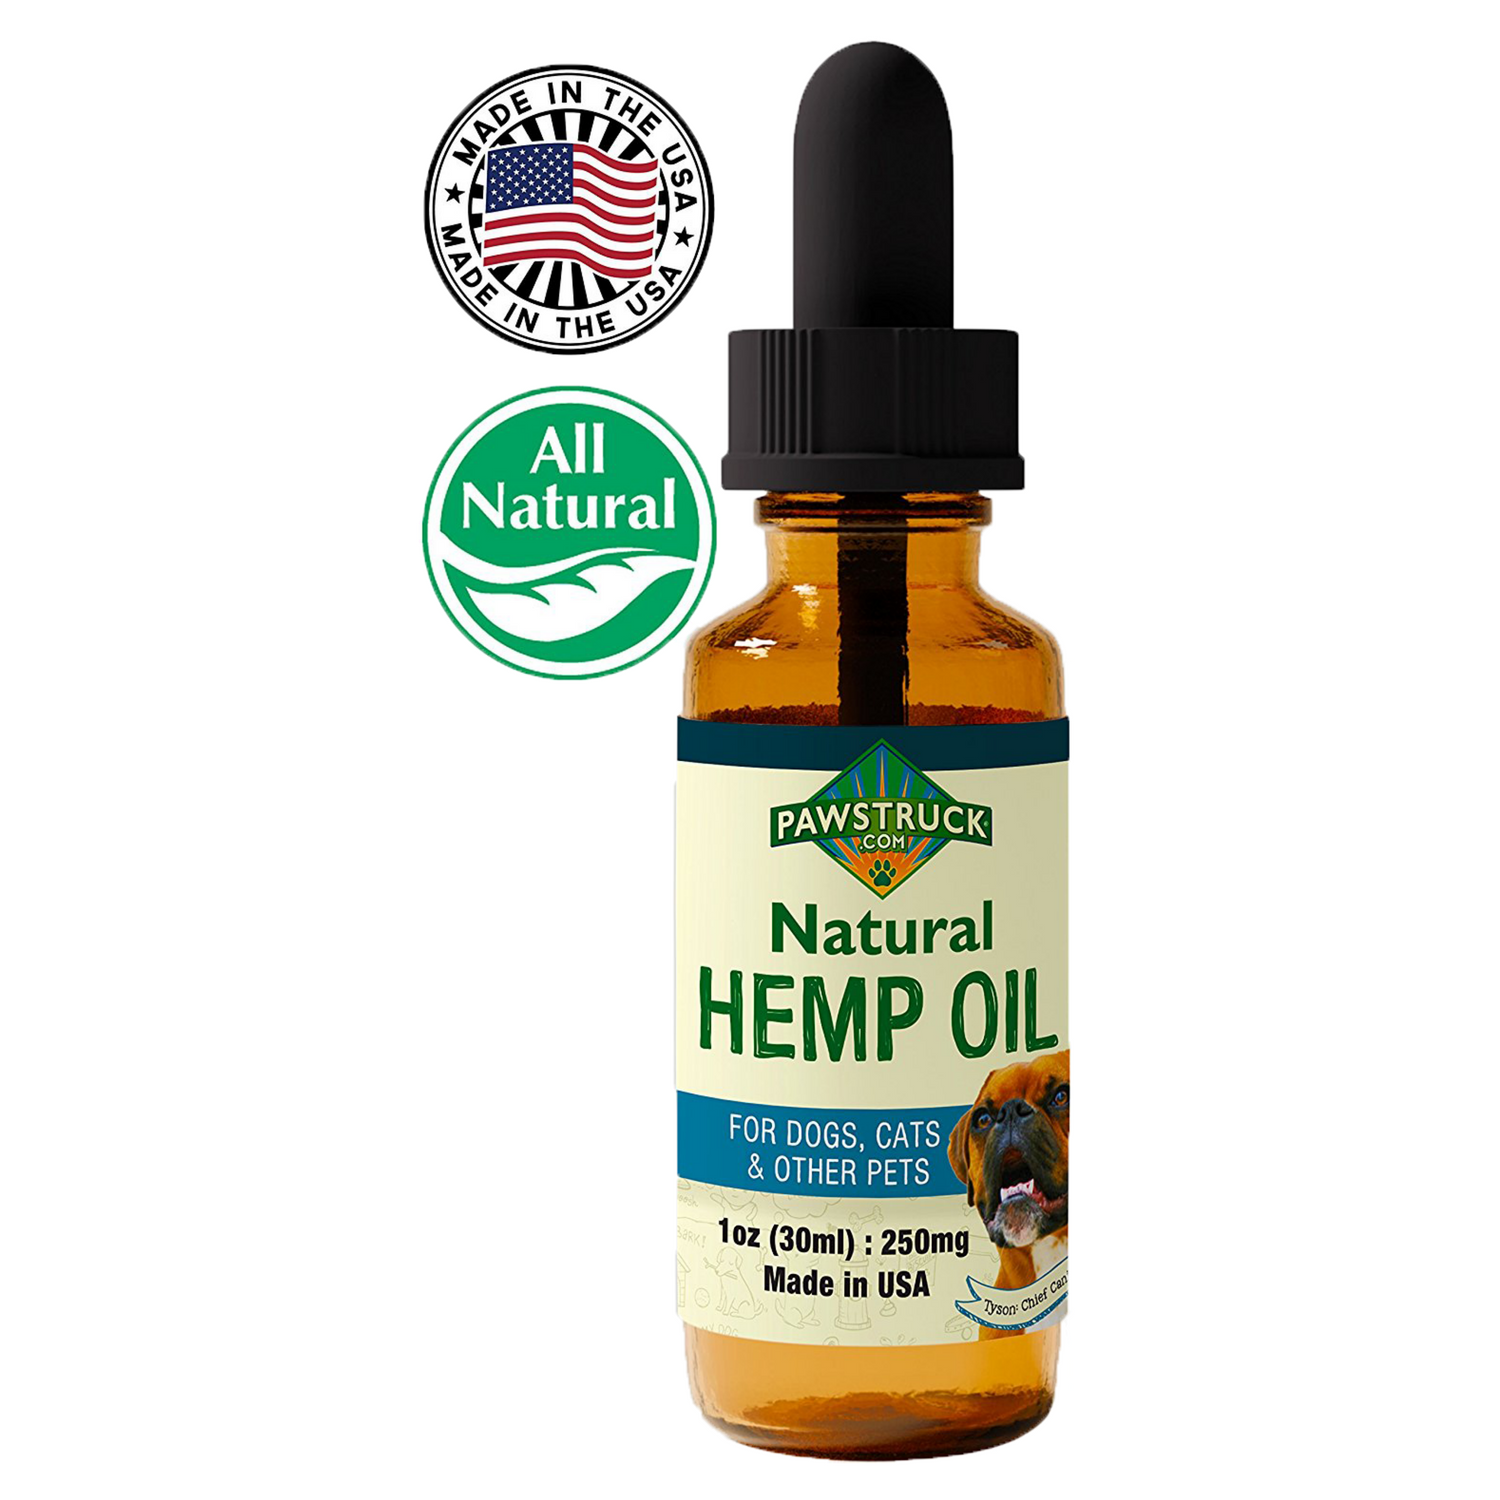 Hemp Oil for Dogs & Cats (250mg) (With images) Oils for